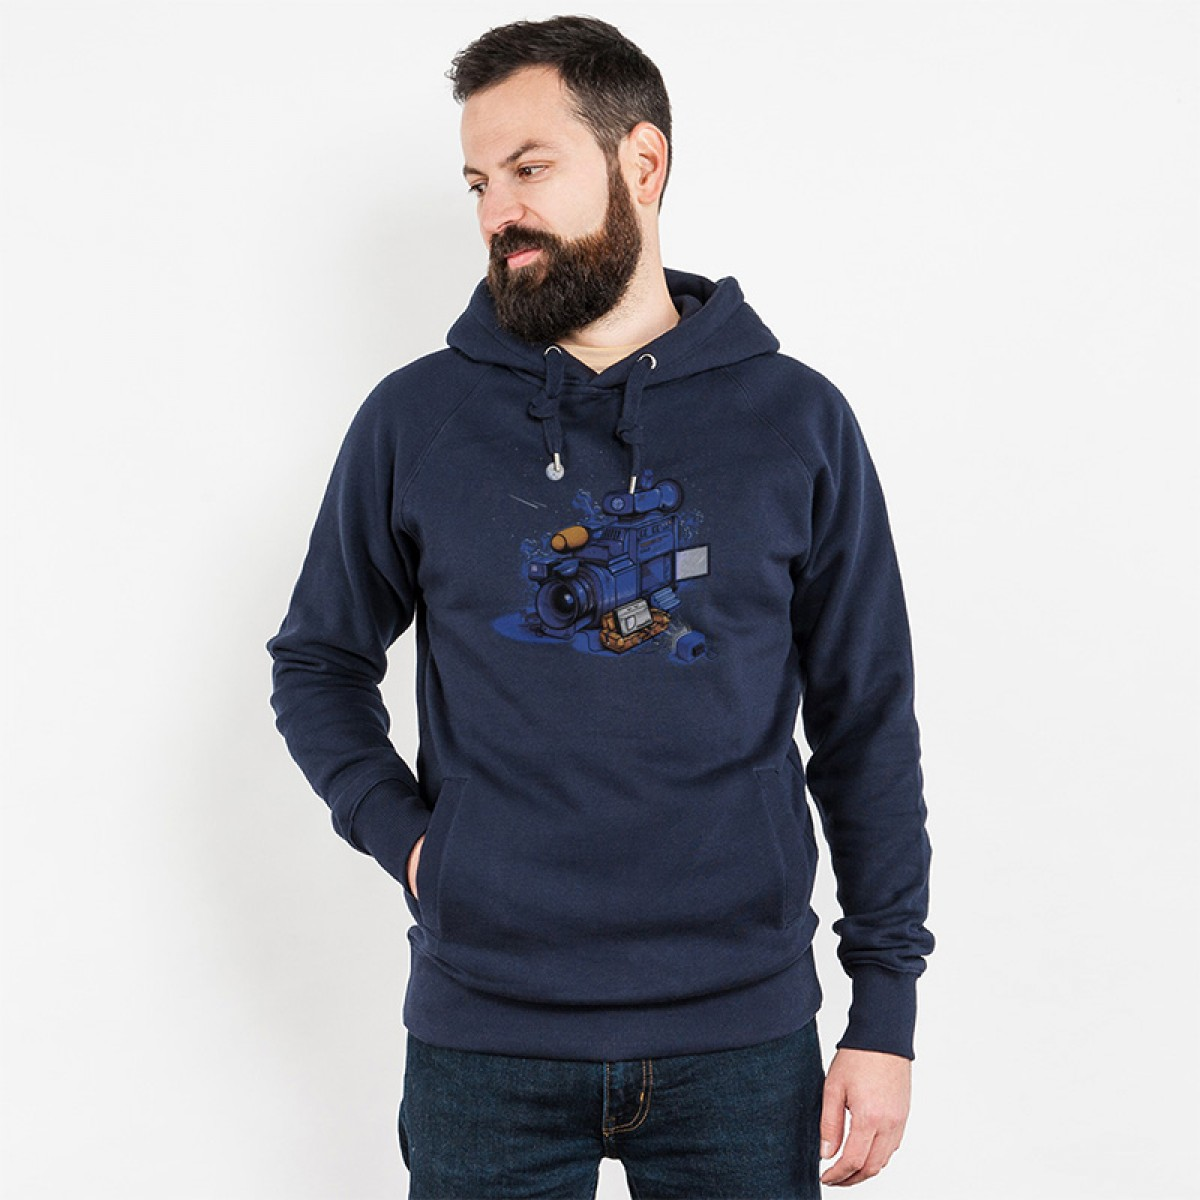 Robert Richter – Movie Break - Organic Cotton Unisex Hoodie